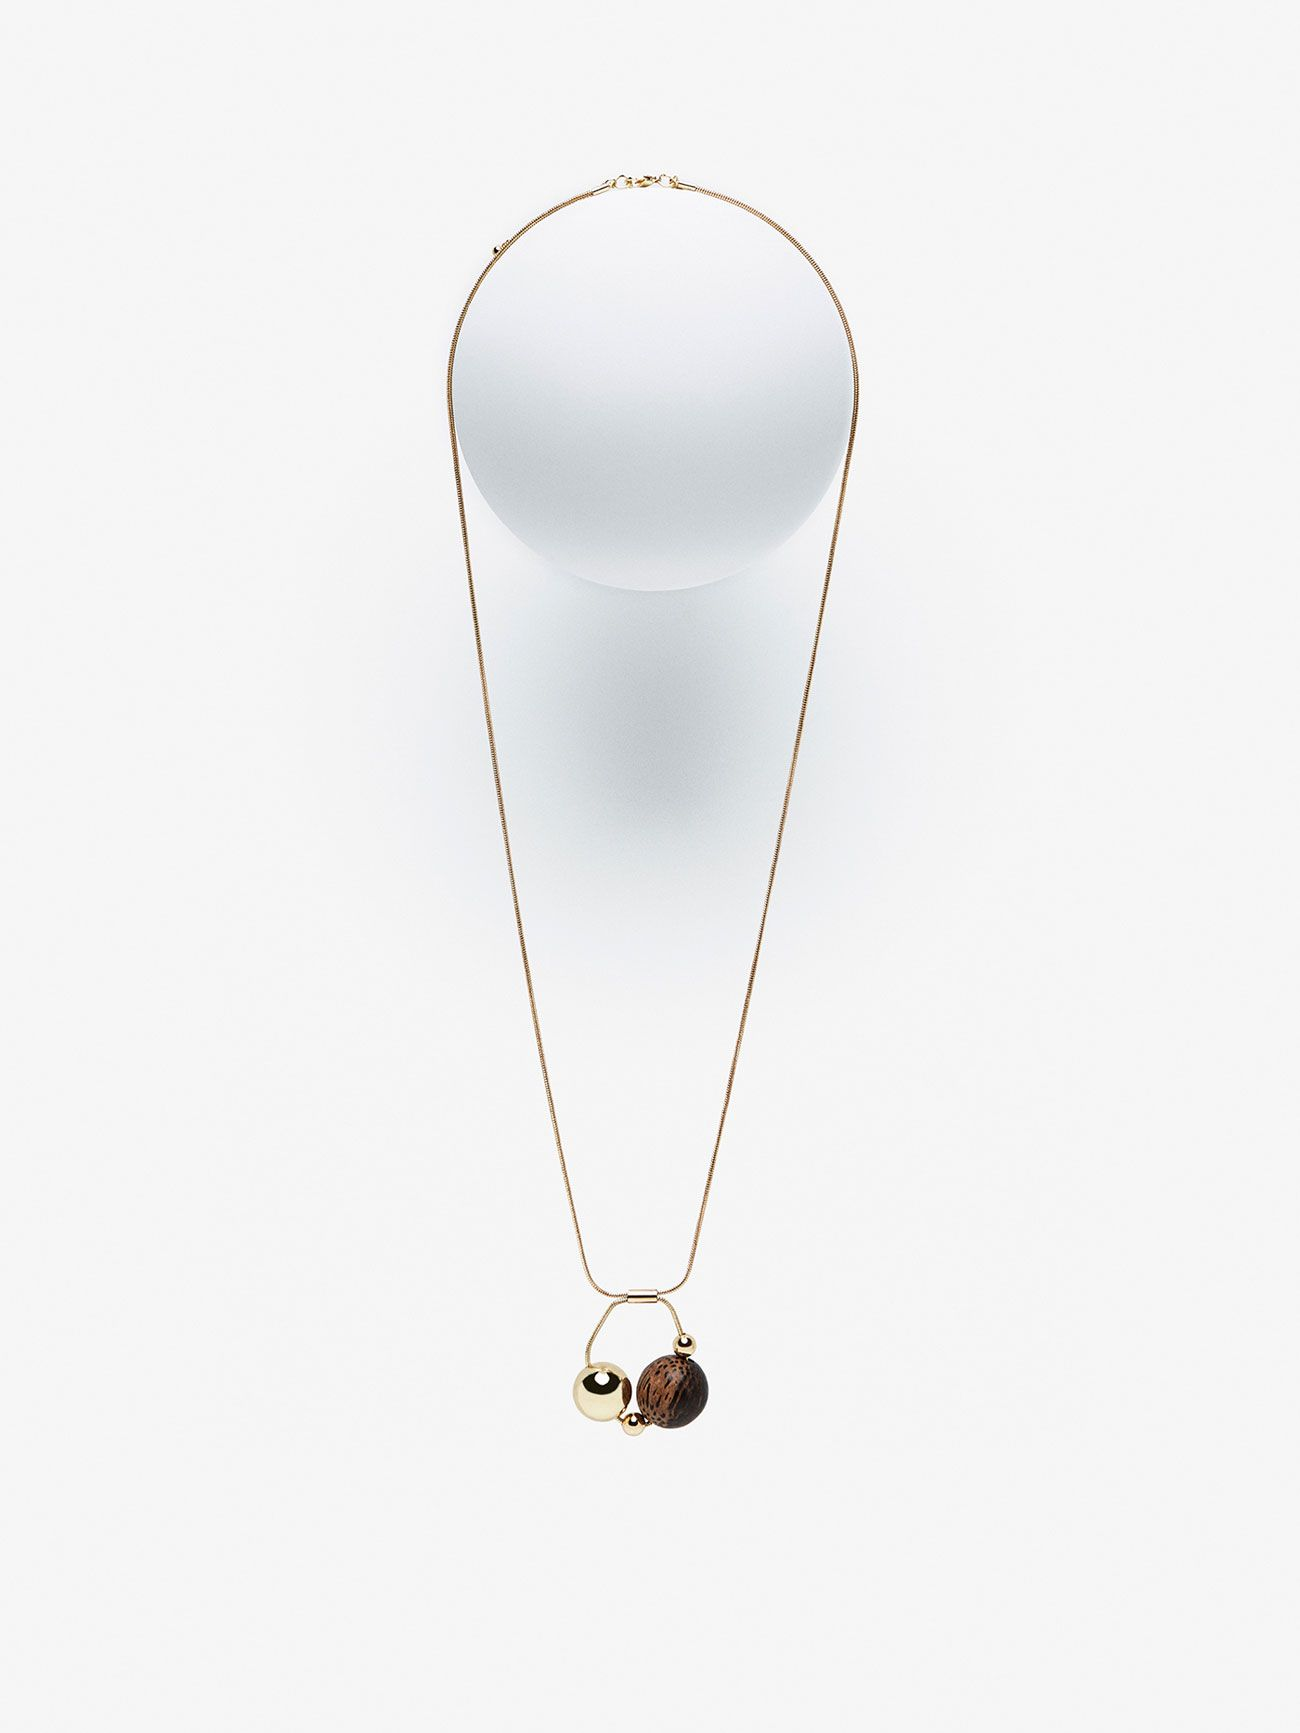 Necklace comprising a wooden dial and a metallic dial hanging from a